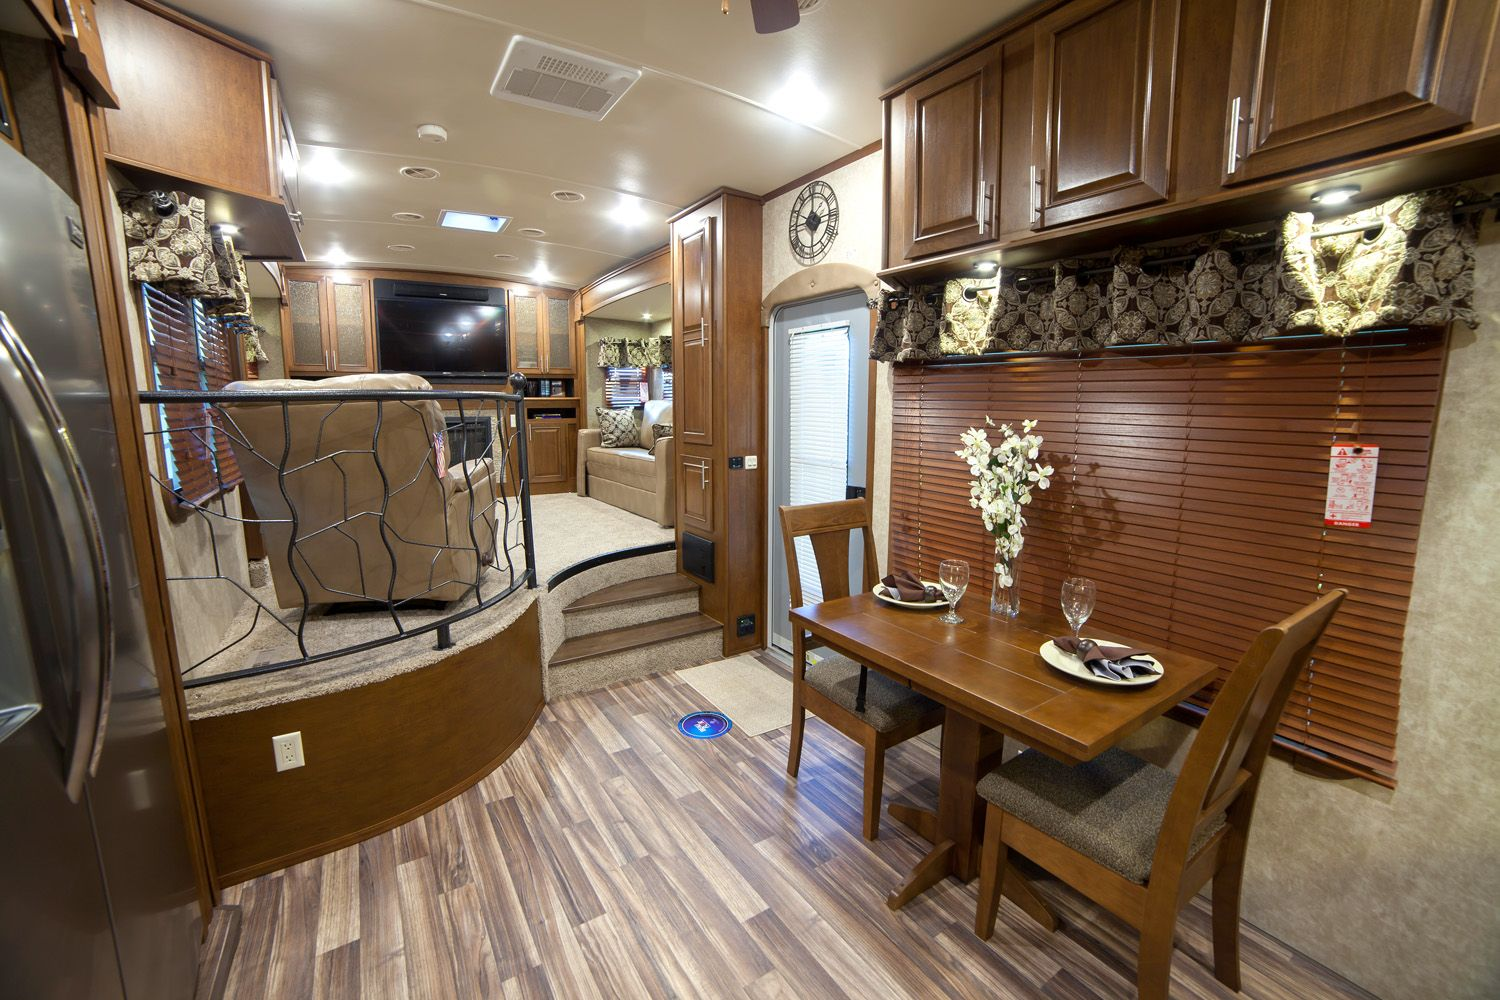 Astonishing used front living room fifth wheel for sale maxresdefault included different thing